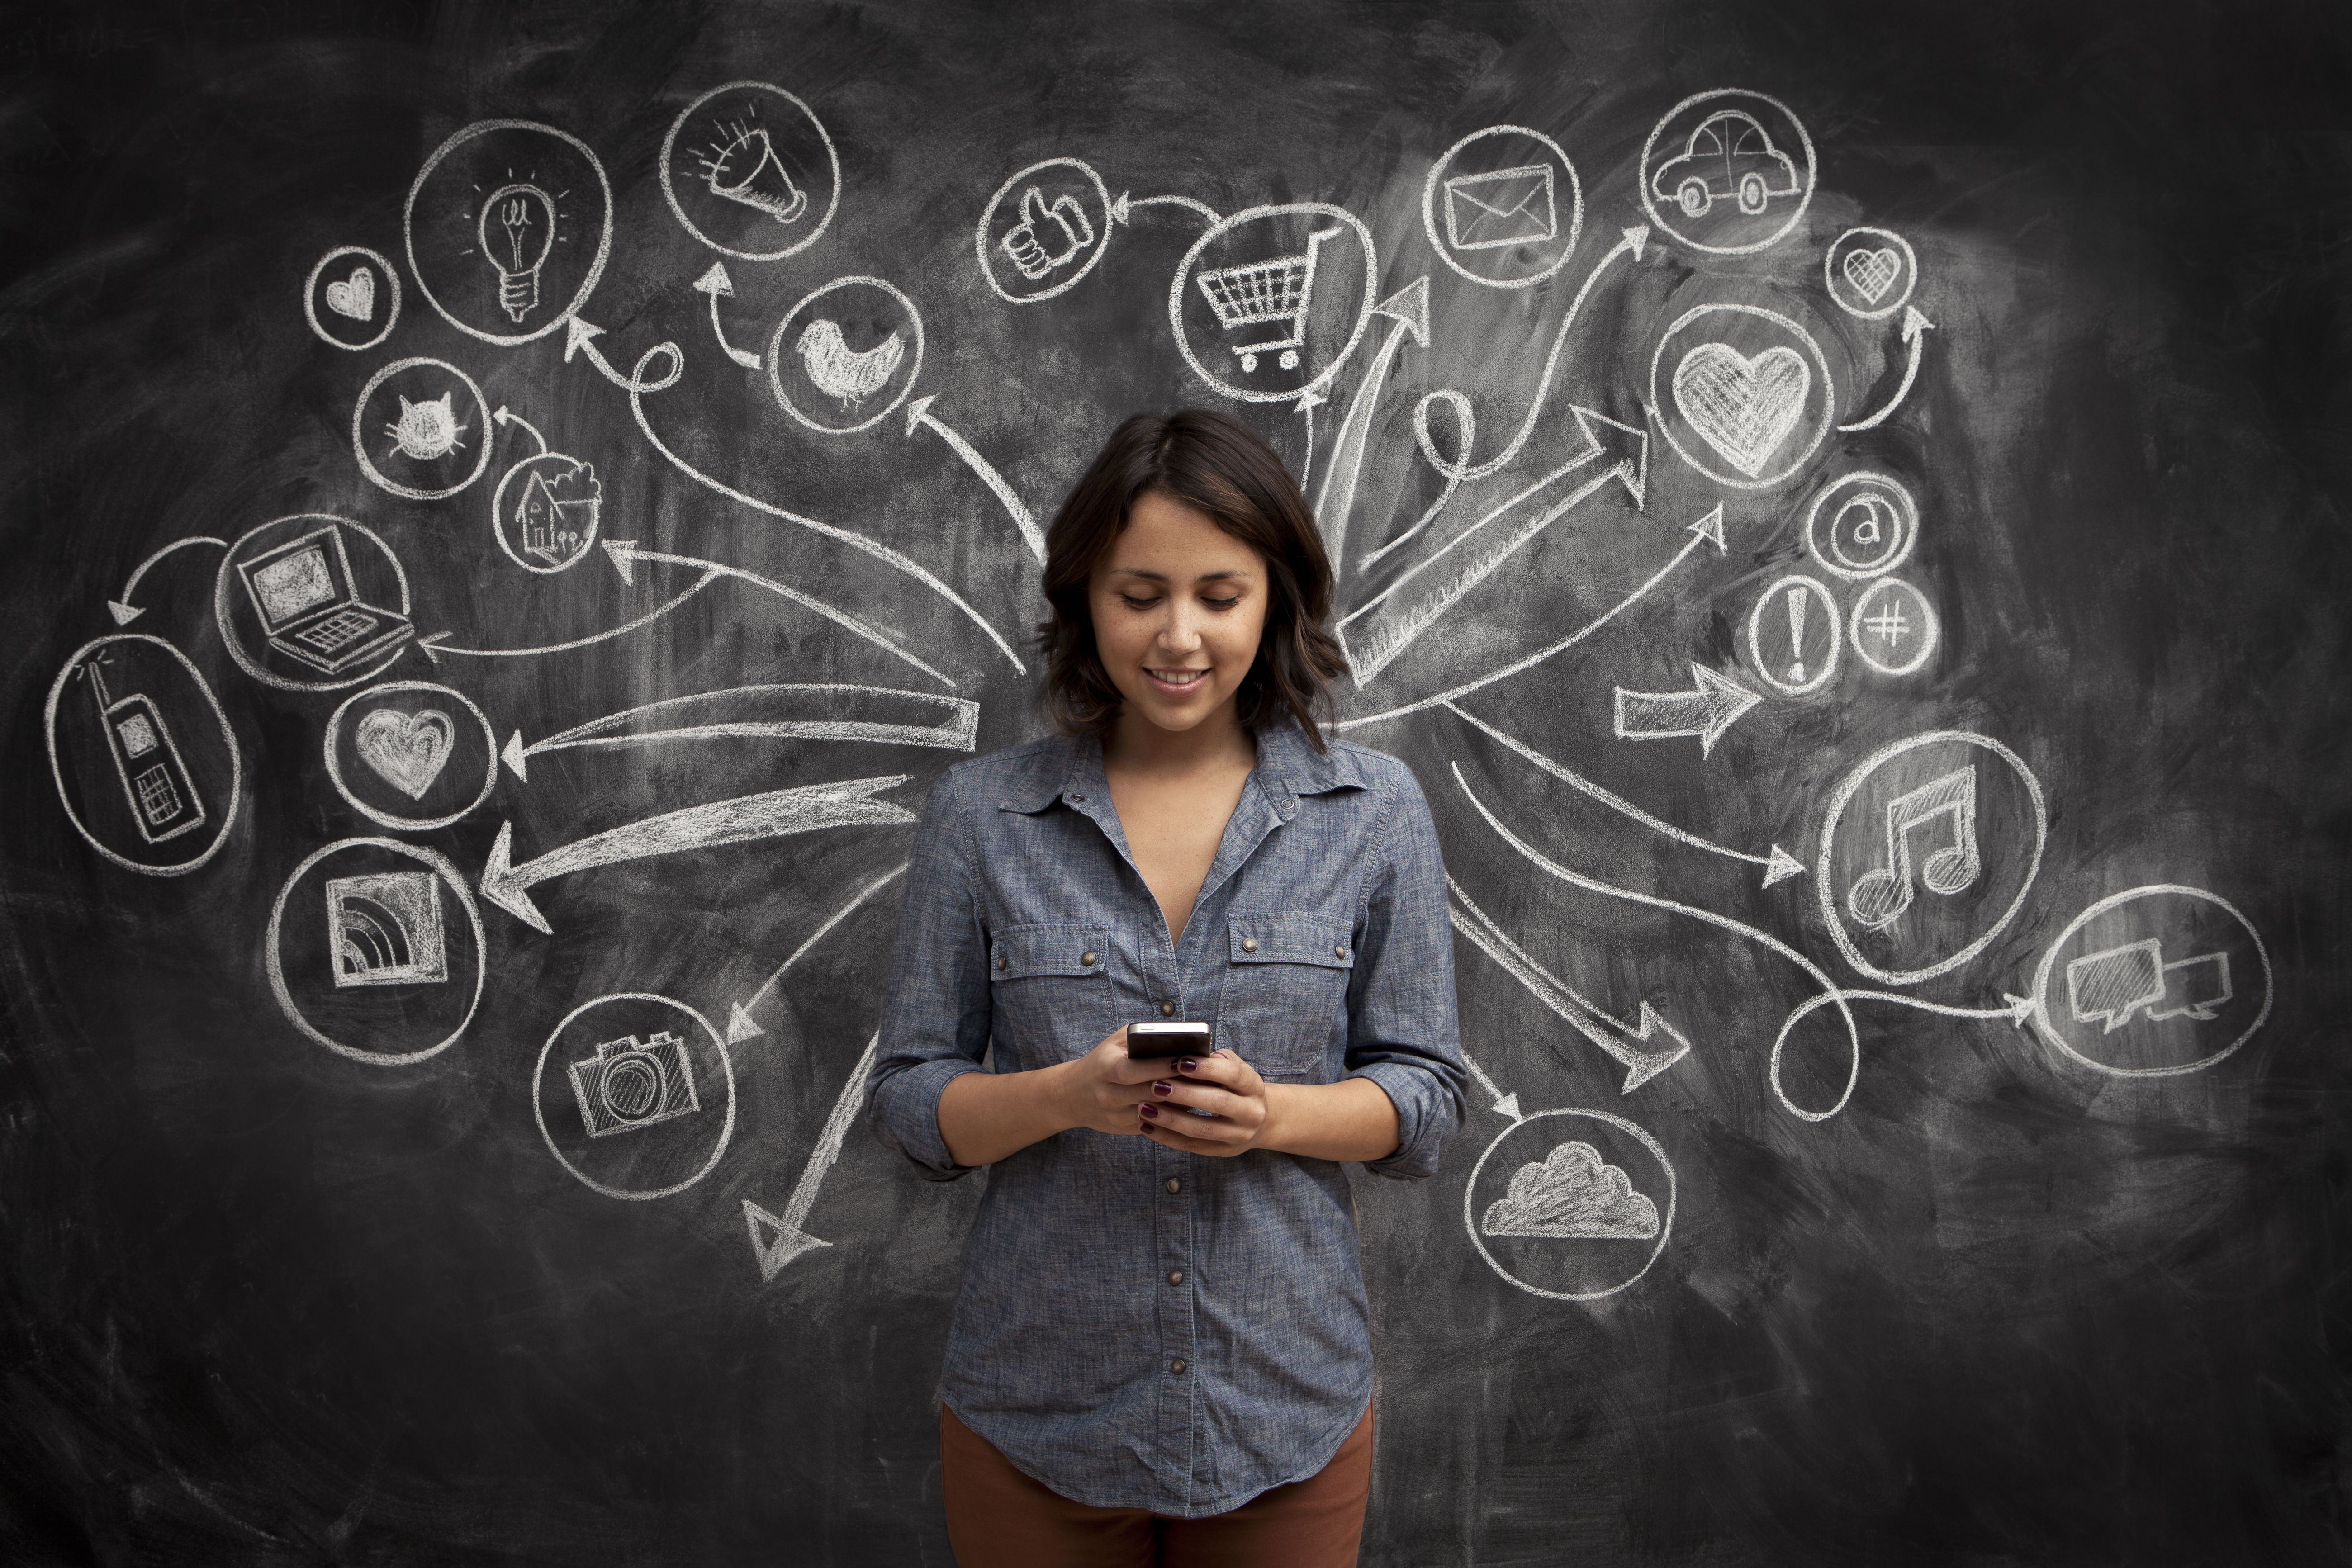 a young woman standing in front of a chalkboard with social media icons drawn